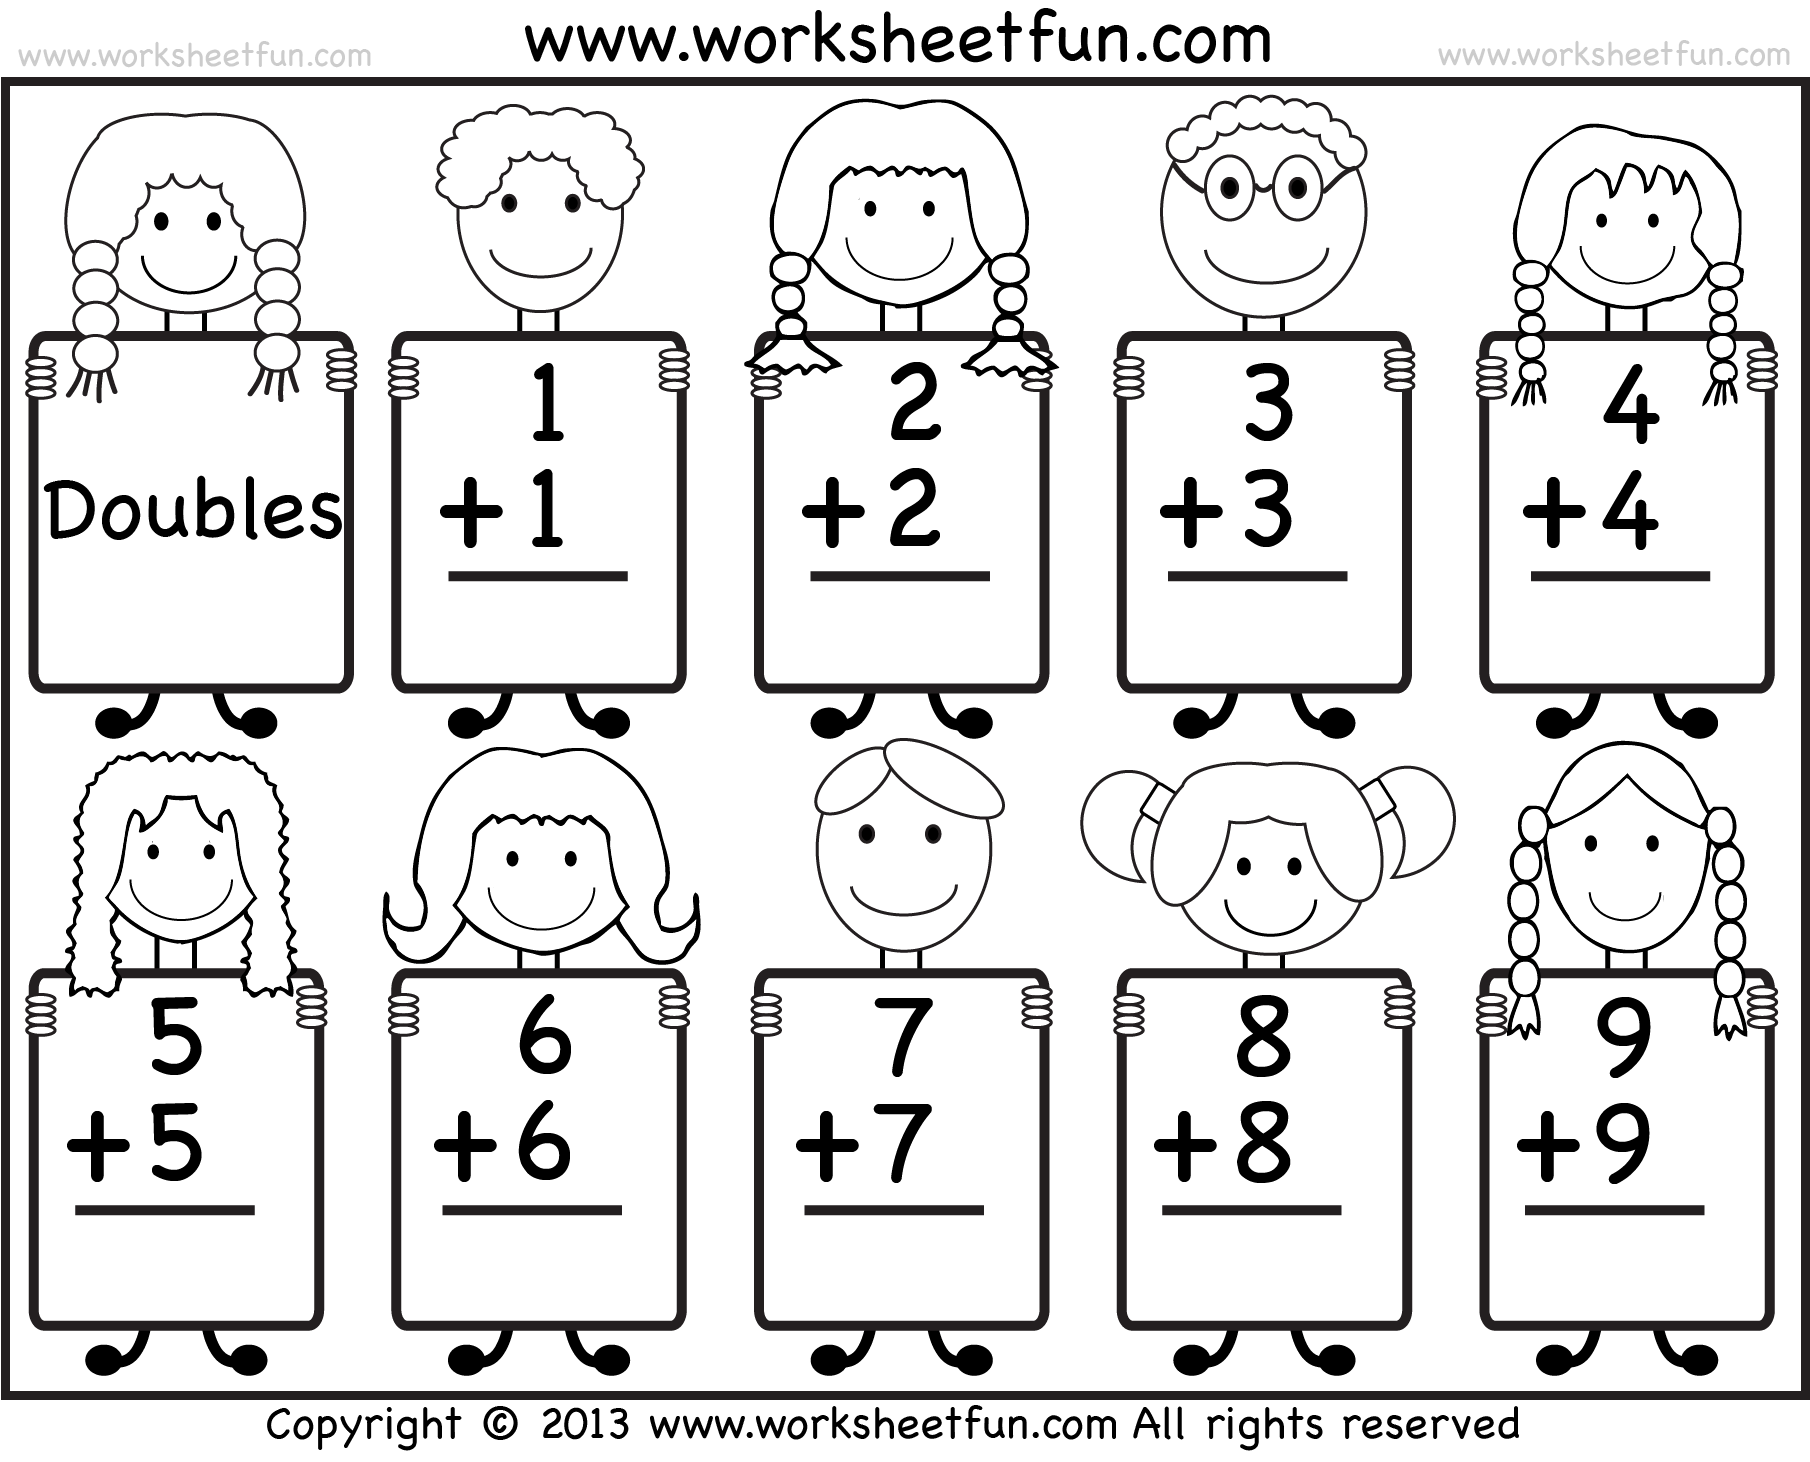 Worksheet Doubles Math addition doubles facts beginner worksheet free doubles